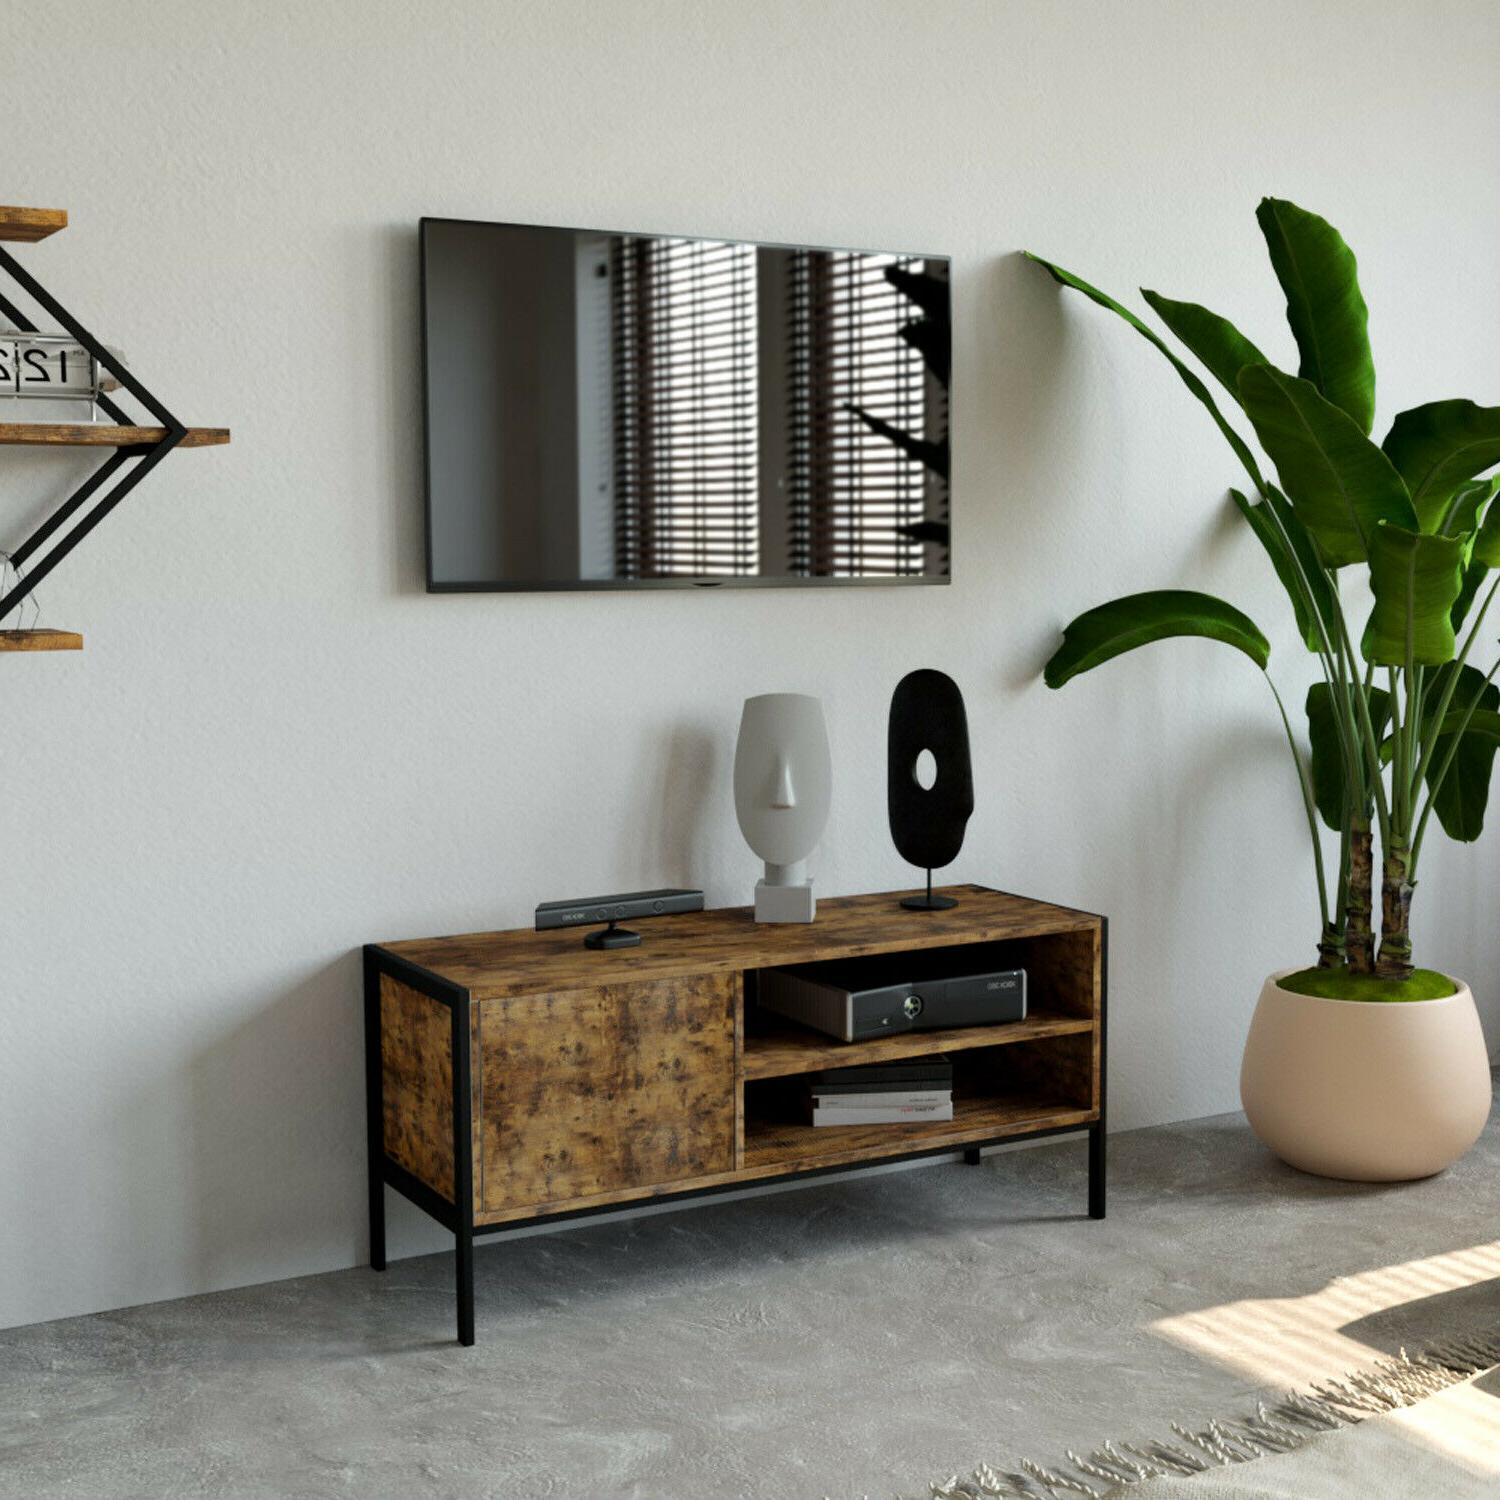 IRONCK Industrial TV TV Console Table